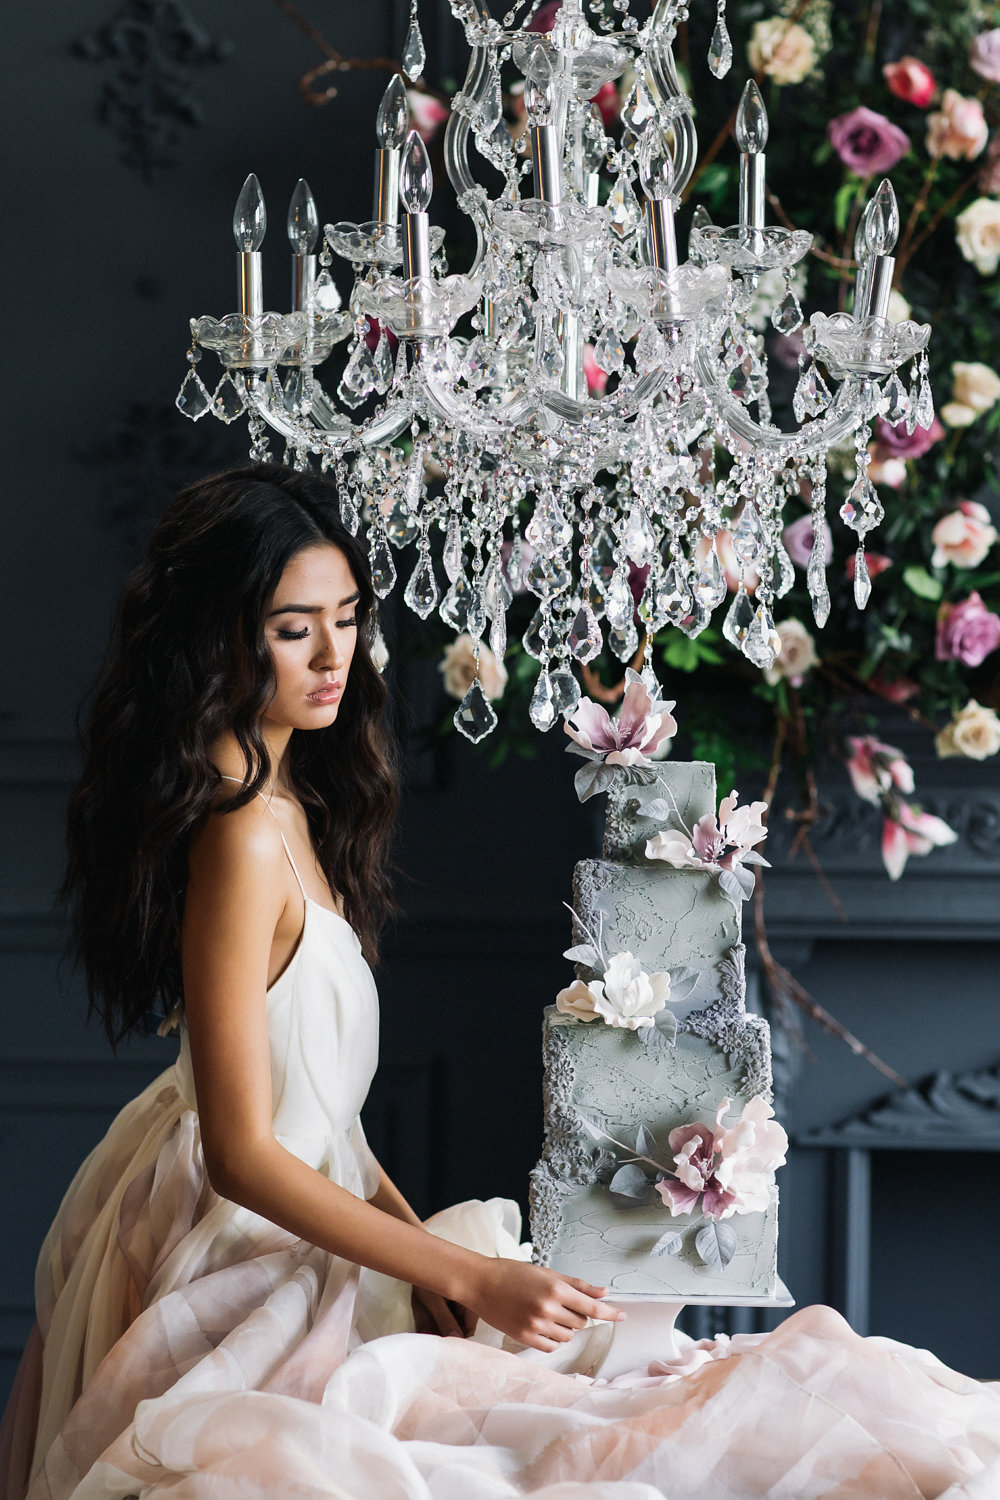 August In Bloom - Bride and decadent cake - Magnolia Dreams (The Bridal Affair)